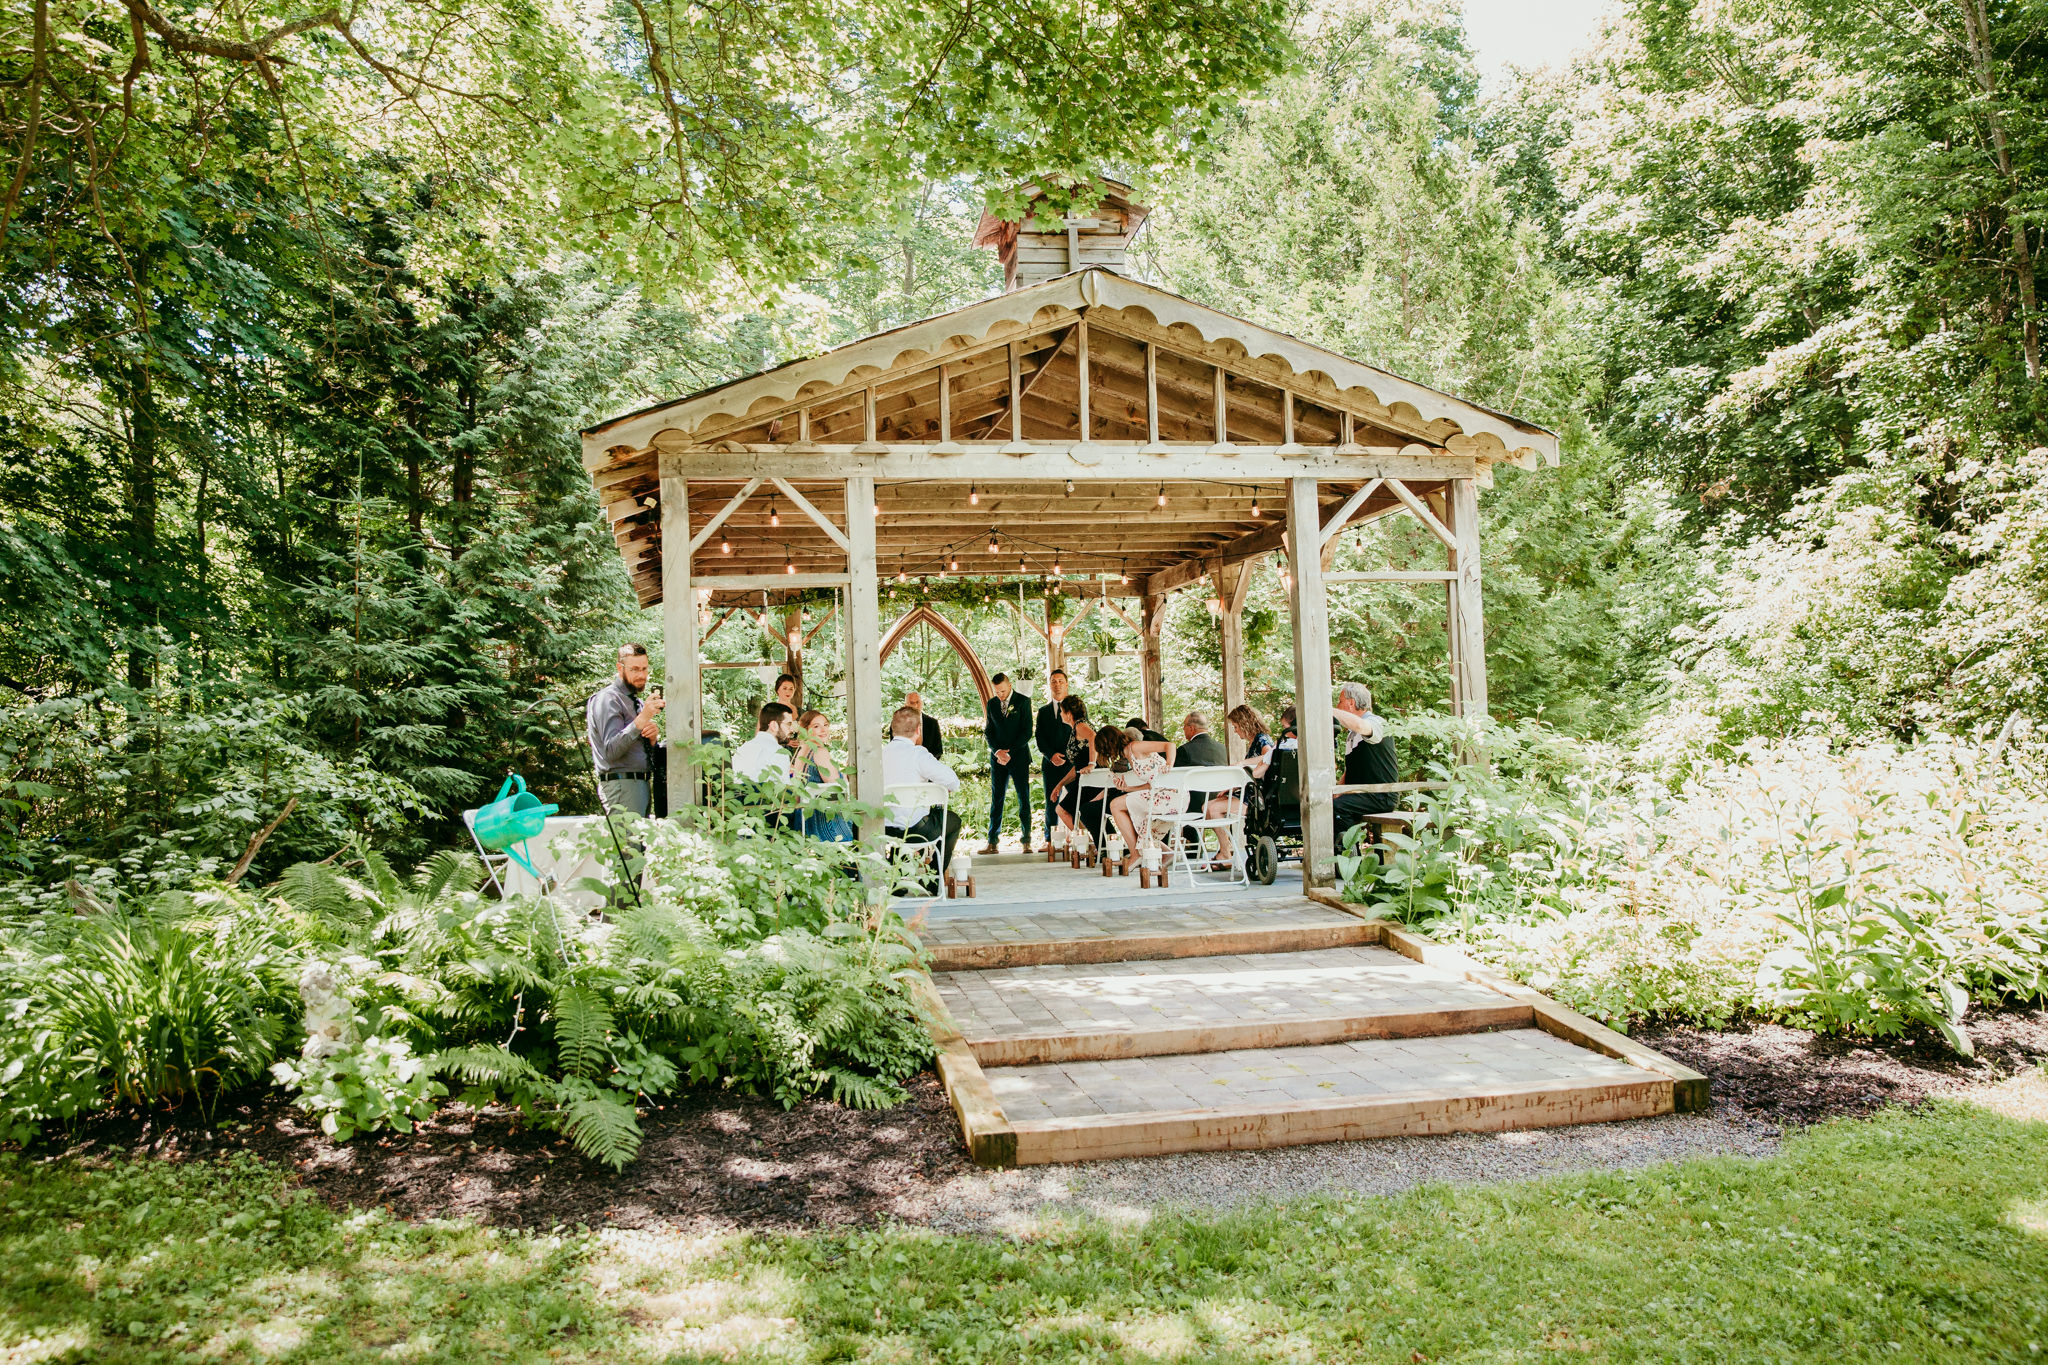 gazebo amongst the garden for a wedding ceremony